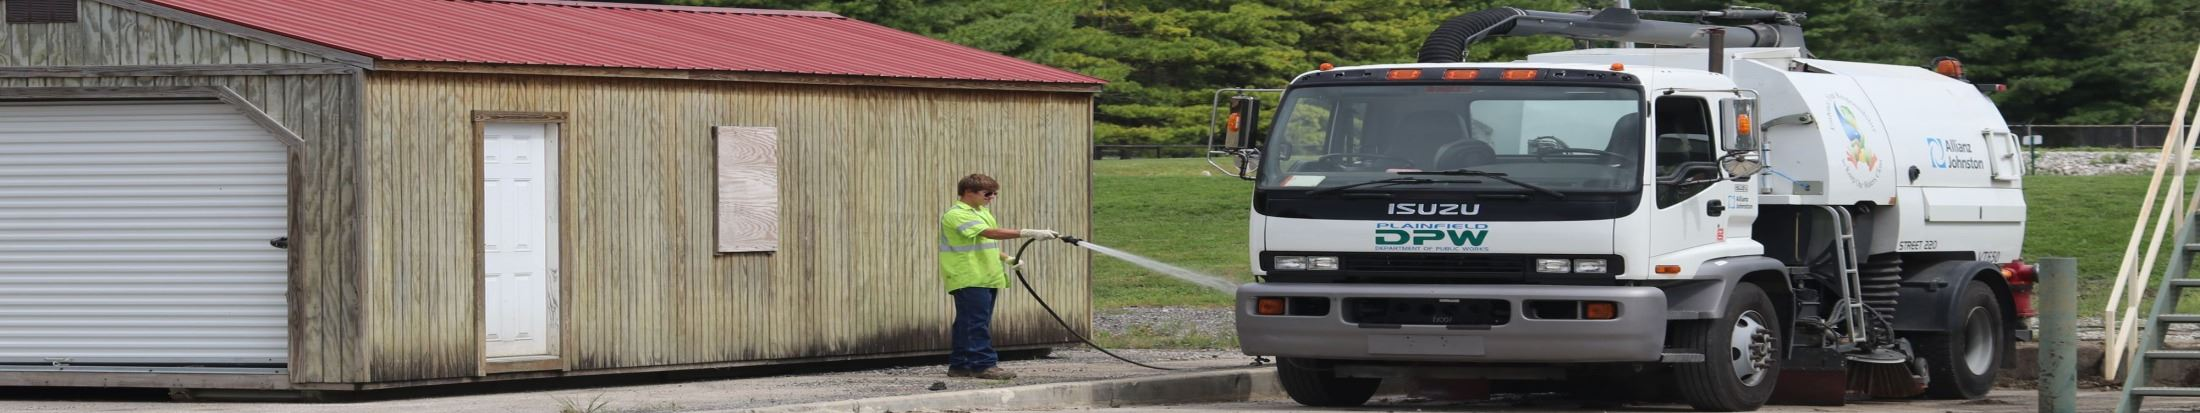 DPW Cleaning a DPW Vehicle